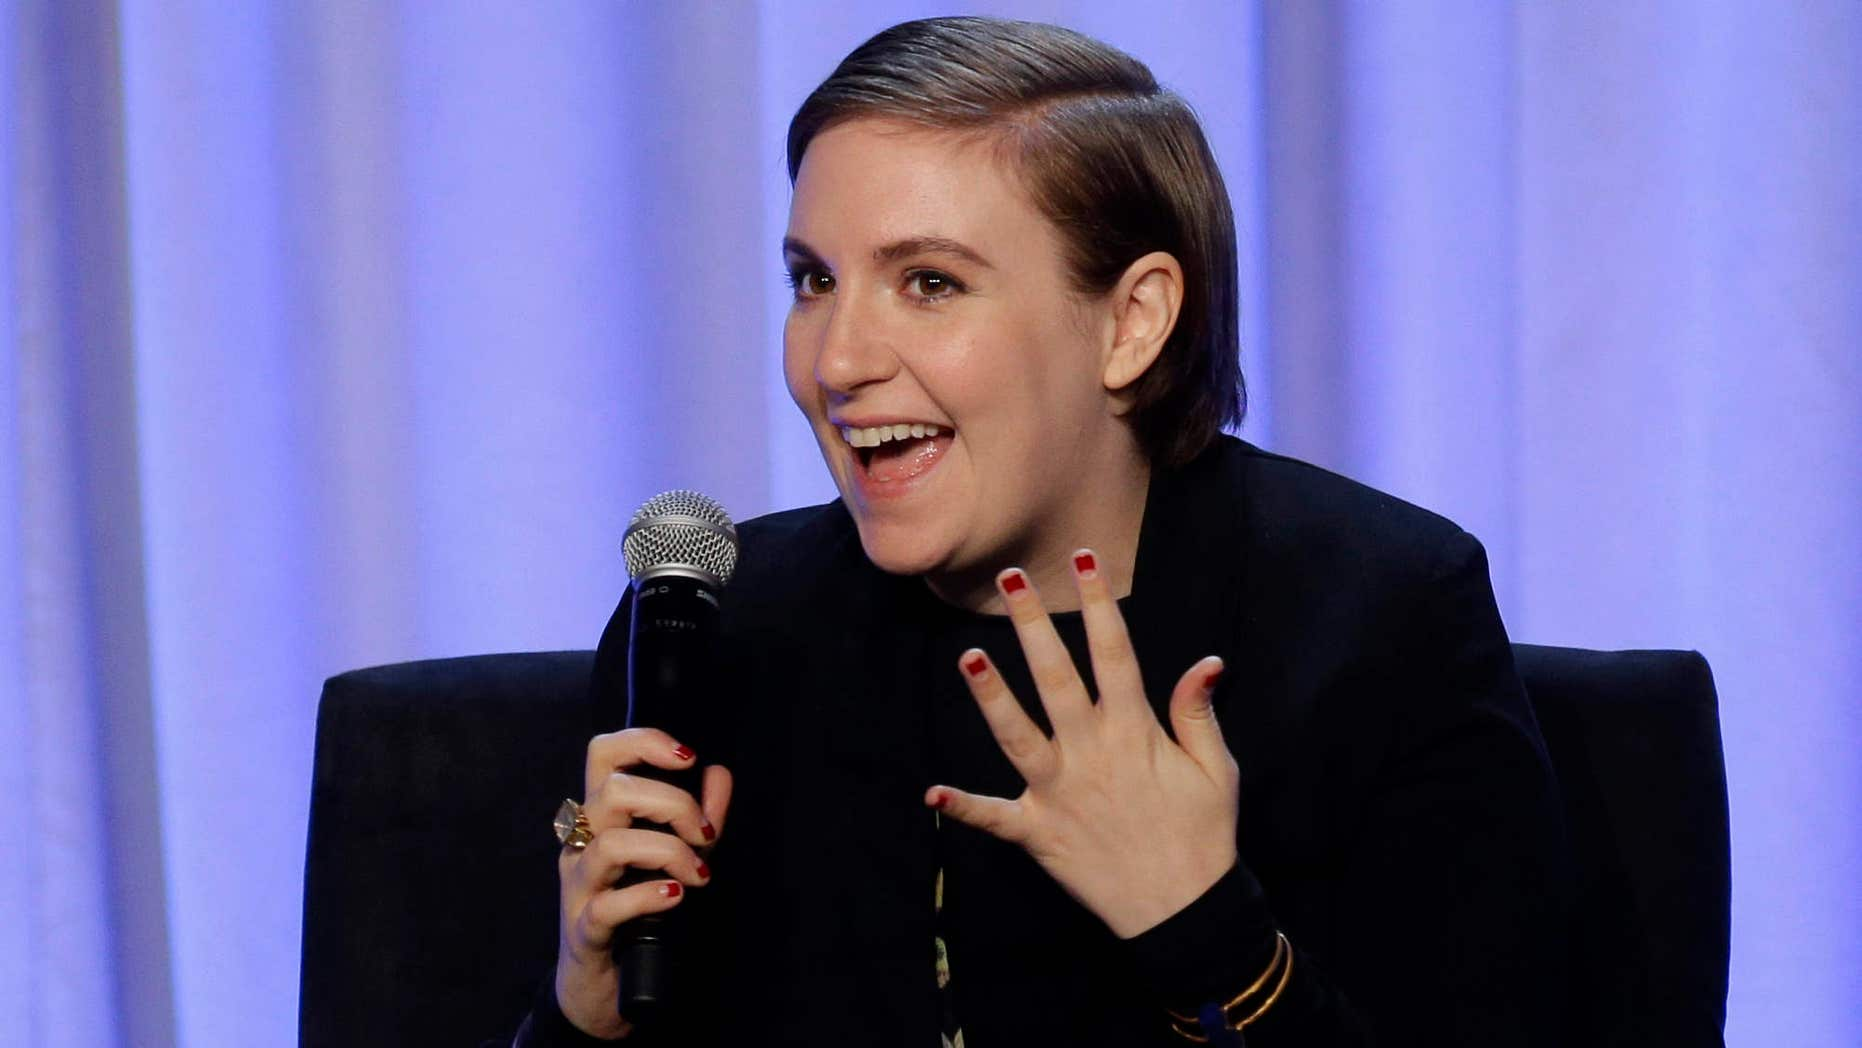 """In this Tuesday, Feb. 2, 2016 photo, writer and actress Lena Dunham speaks during a panel entitled """"Media with Purpose"""" at the American Magazine Media 360 Conference in New York."""